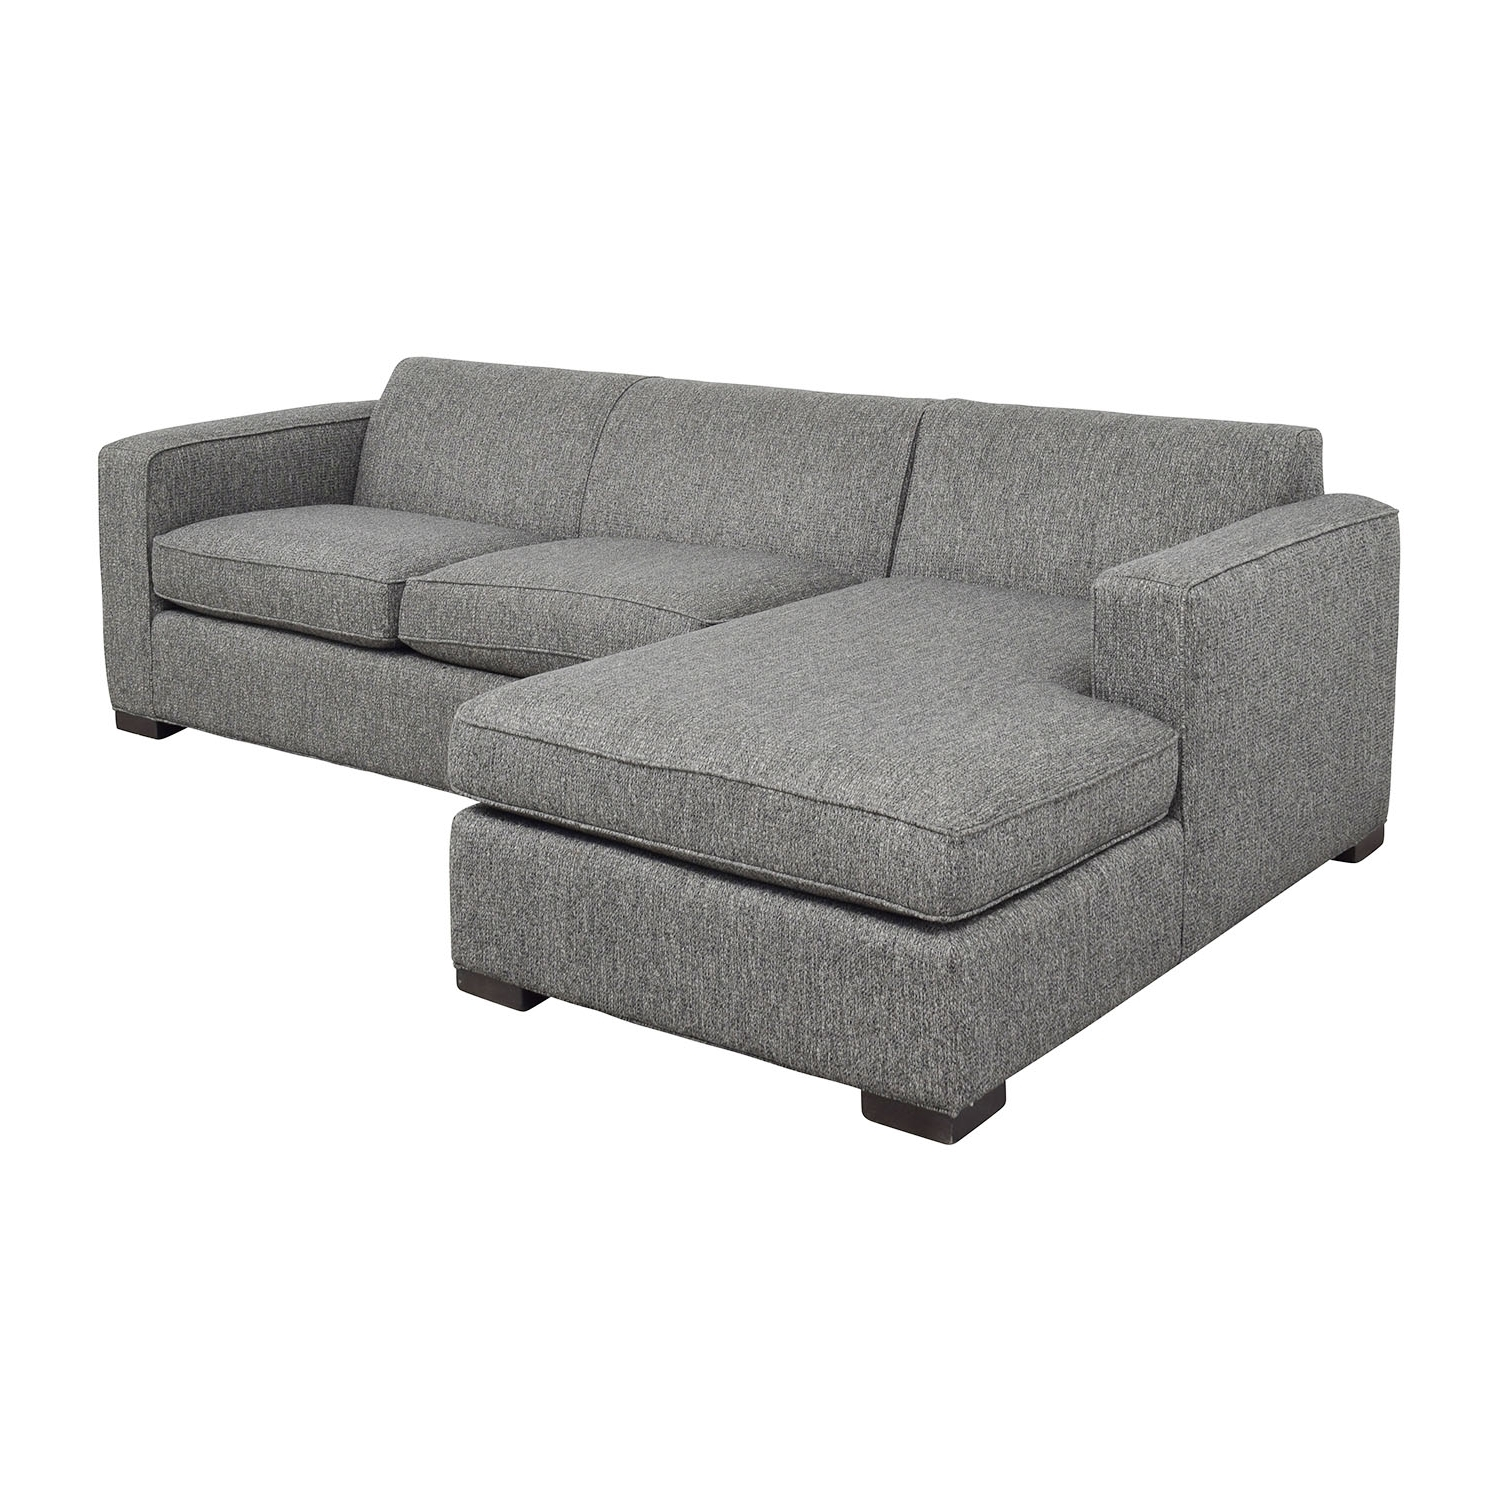 [%61% Off – Room & Board Room & Board Easton Sectional In Grey / Sofas Intended For Preferred Room And Board Sectional Sofas|Room And Board Sectional Sofas In Best And Newest 61% Off – Room & Board Room & Board Easton Sectional In Grey / Sofas|Well Known Room And Board Sectional Sofas With 61% Off – Room & Board Room & Board Easton Sectional In Grey / Sofas|Well Known 61% Off – Room & Board Room & Board Easton Sectional In Grey / Sofas Regarding Room And Board Sectional Sofas%] (View 17 of 20)